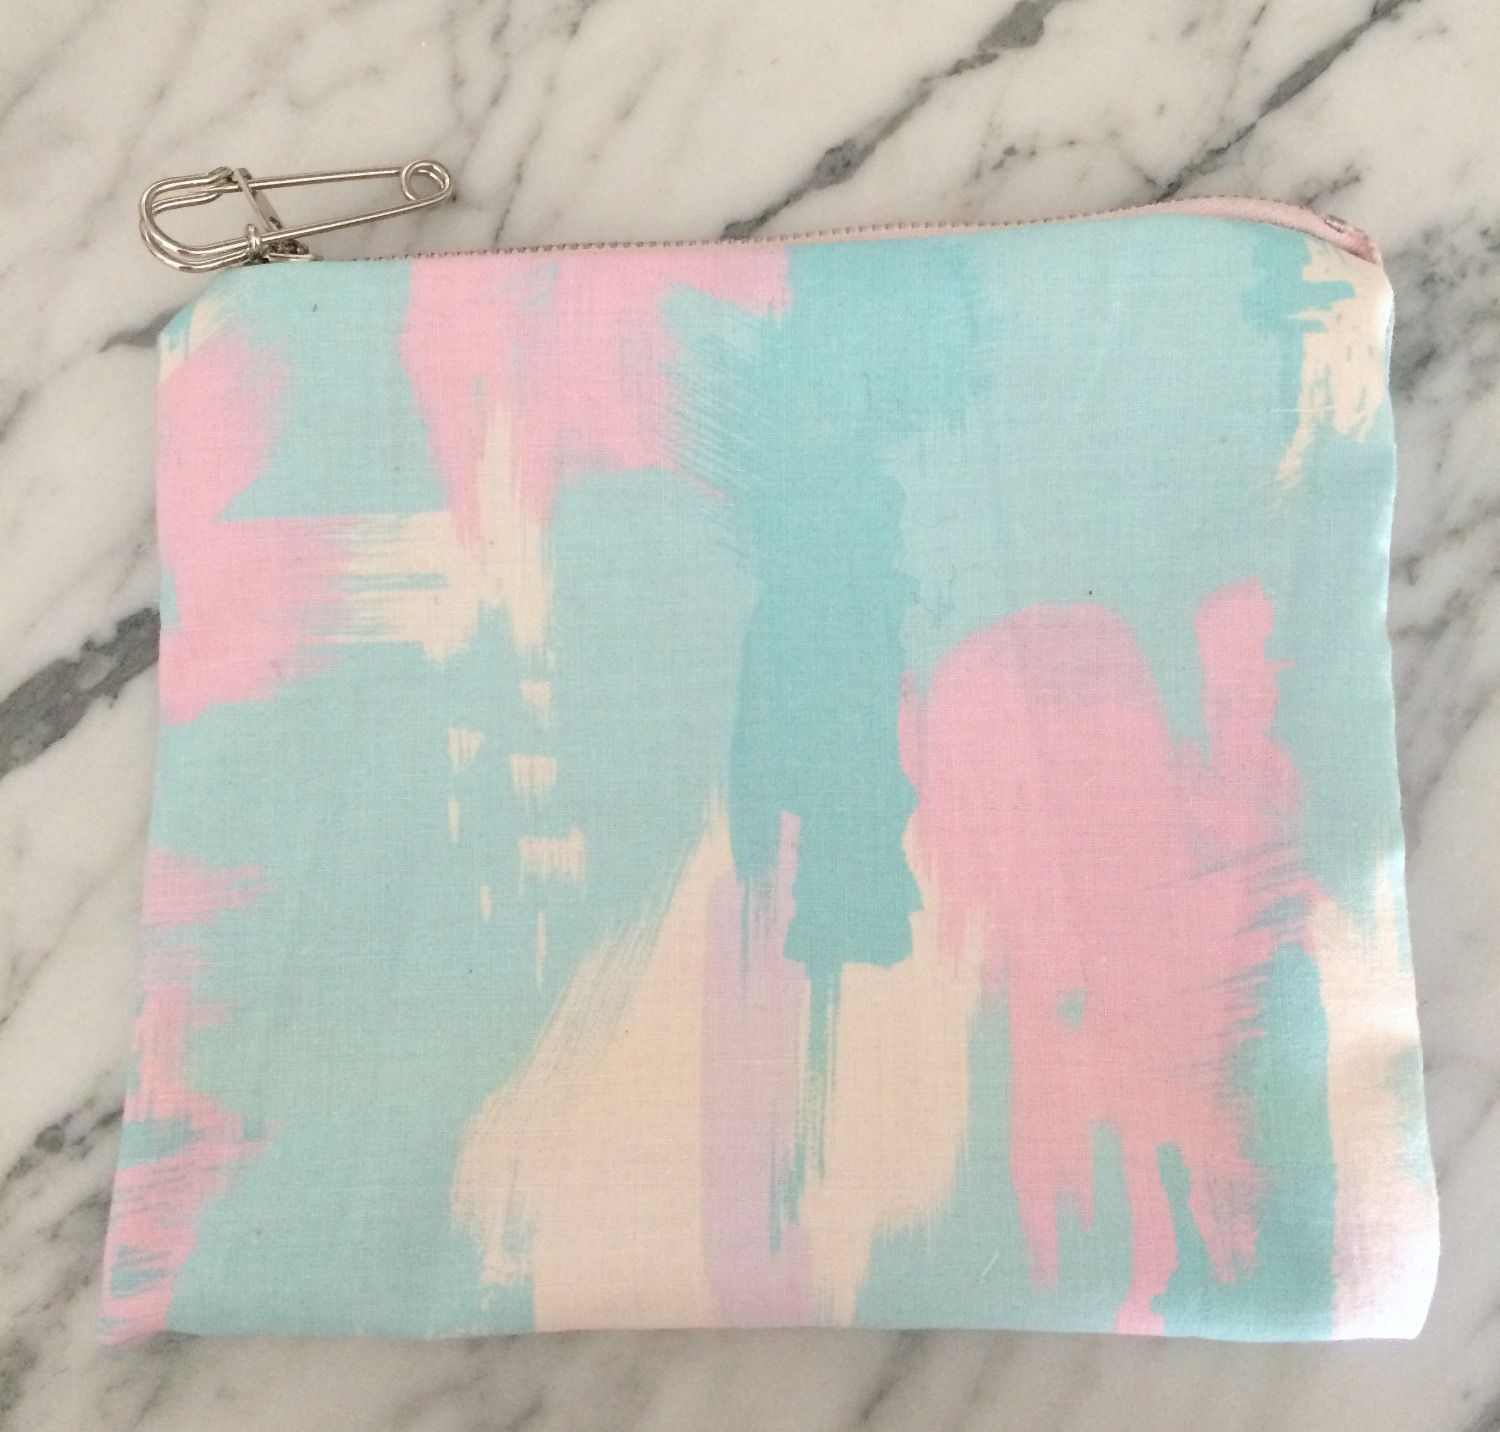 Teal & Pink Zipper Pouch Teal and pink, Ted baker icon